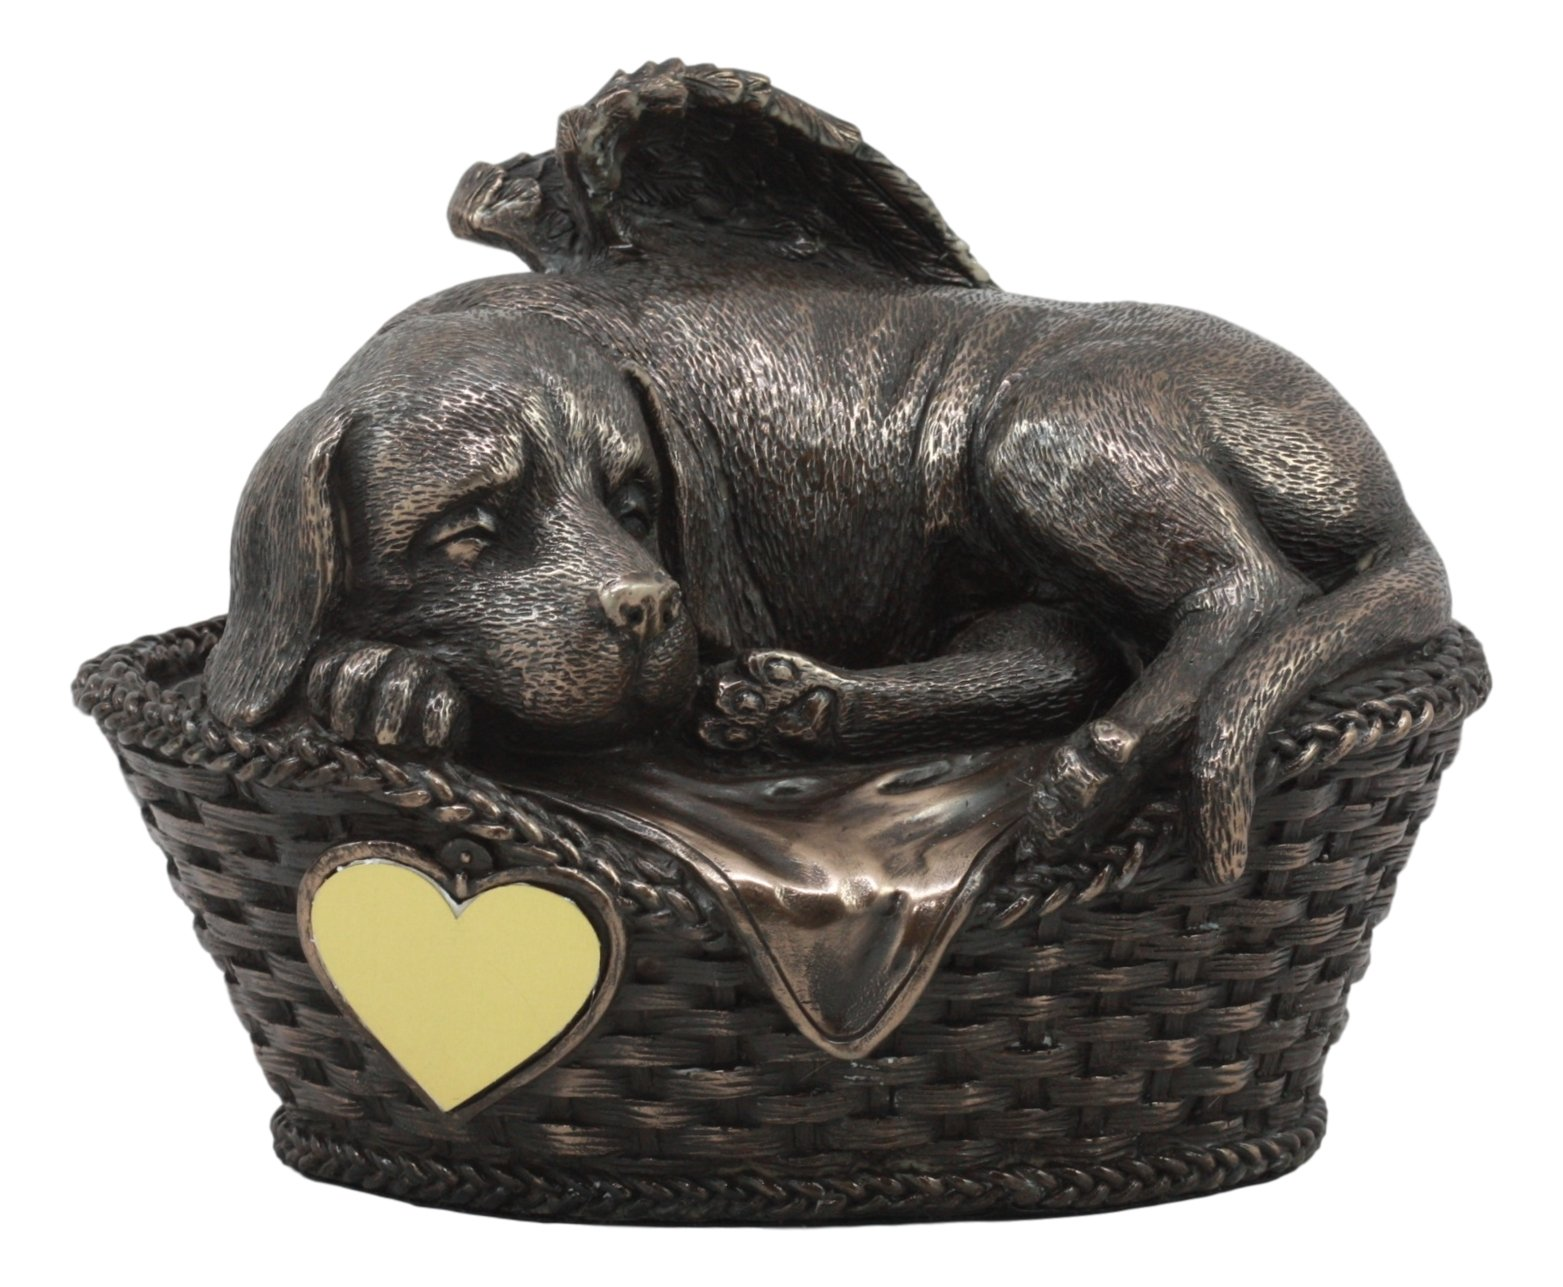 Ebros Heavenly Angel Labrador Dog Sleeping in Wicker Bed Basket Cremation Urn Pet Memorial Statue All Dogs Go to Heaven Inspirational Figurine Labrador Retriever Sculpture